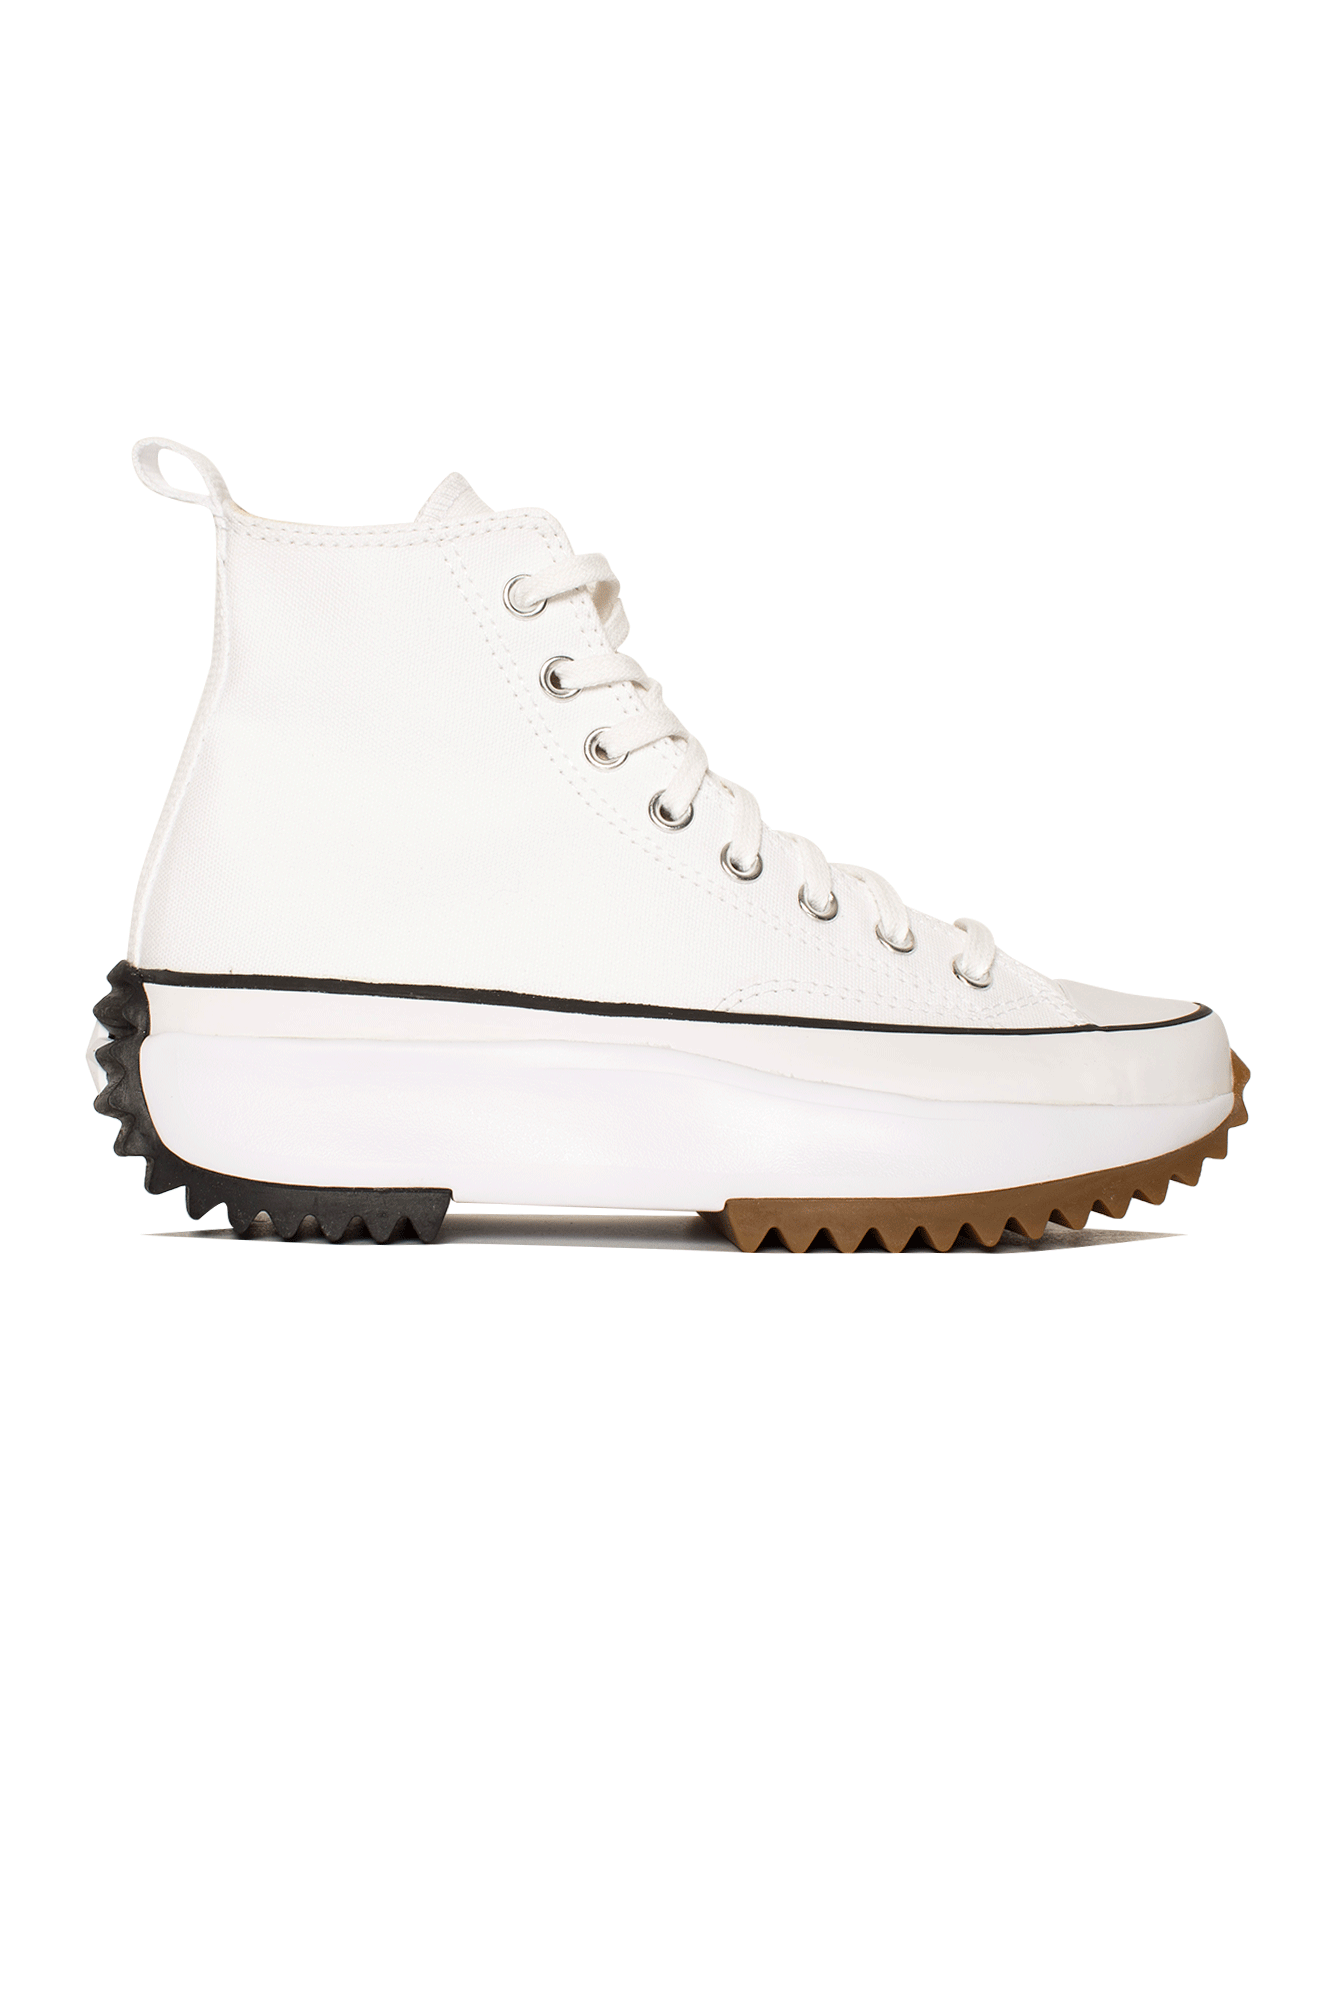 Converse Sneakers Run Star Hike Hi Bianco 166799C#000#102#3 - One Block Down